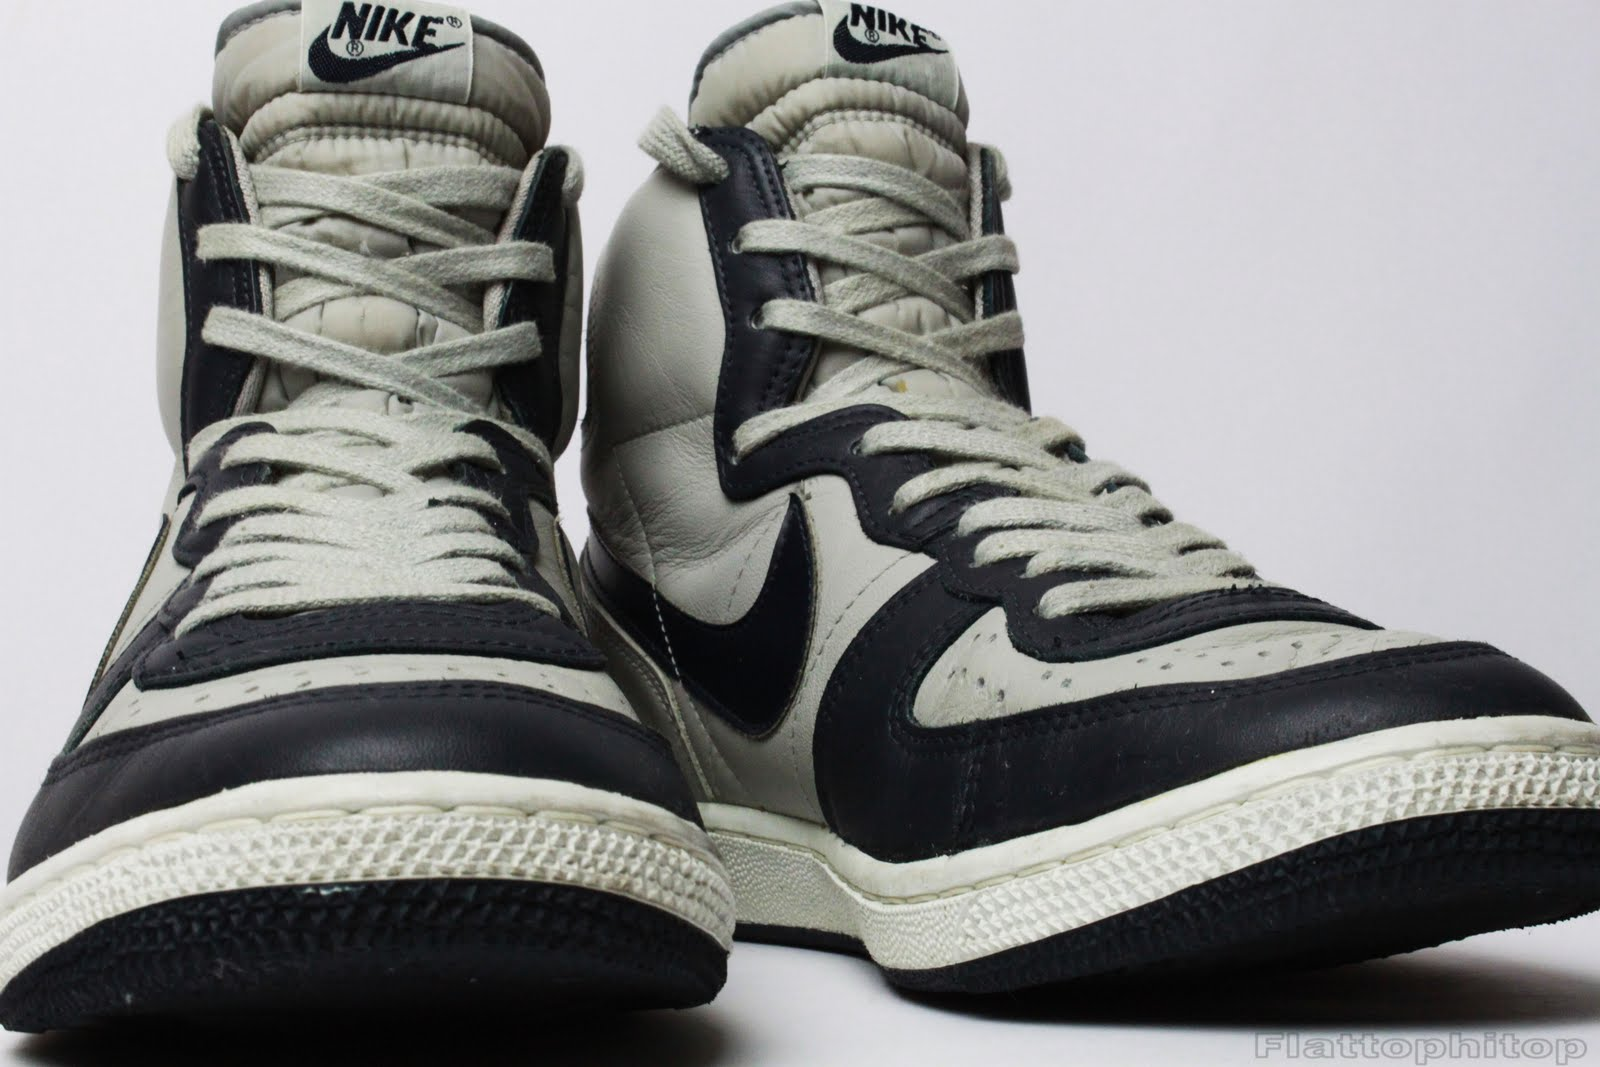 395e75cba68 NIKE TERMINATOR (1985). Be true to your thinking... POSTED BY Flattophitop!